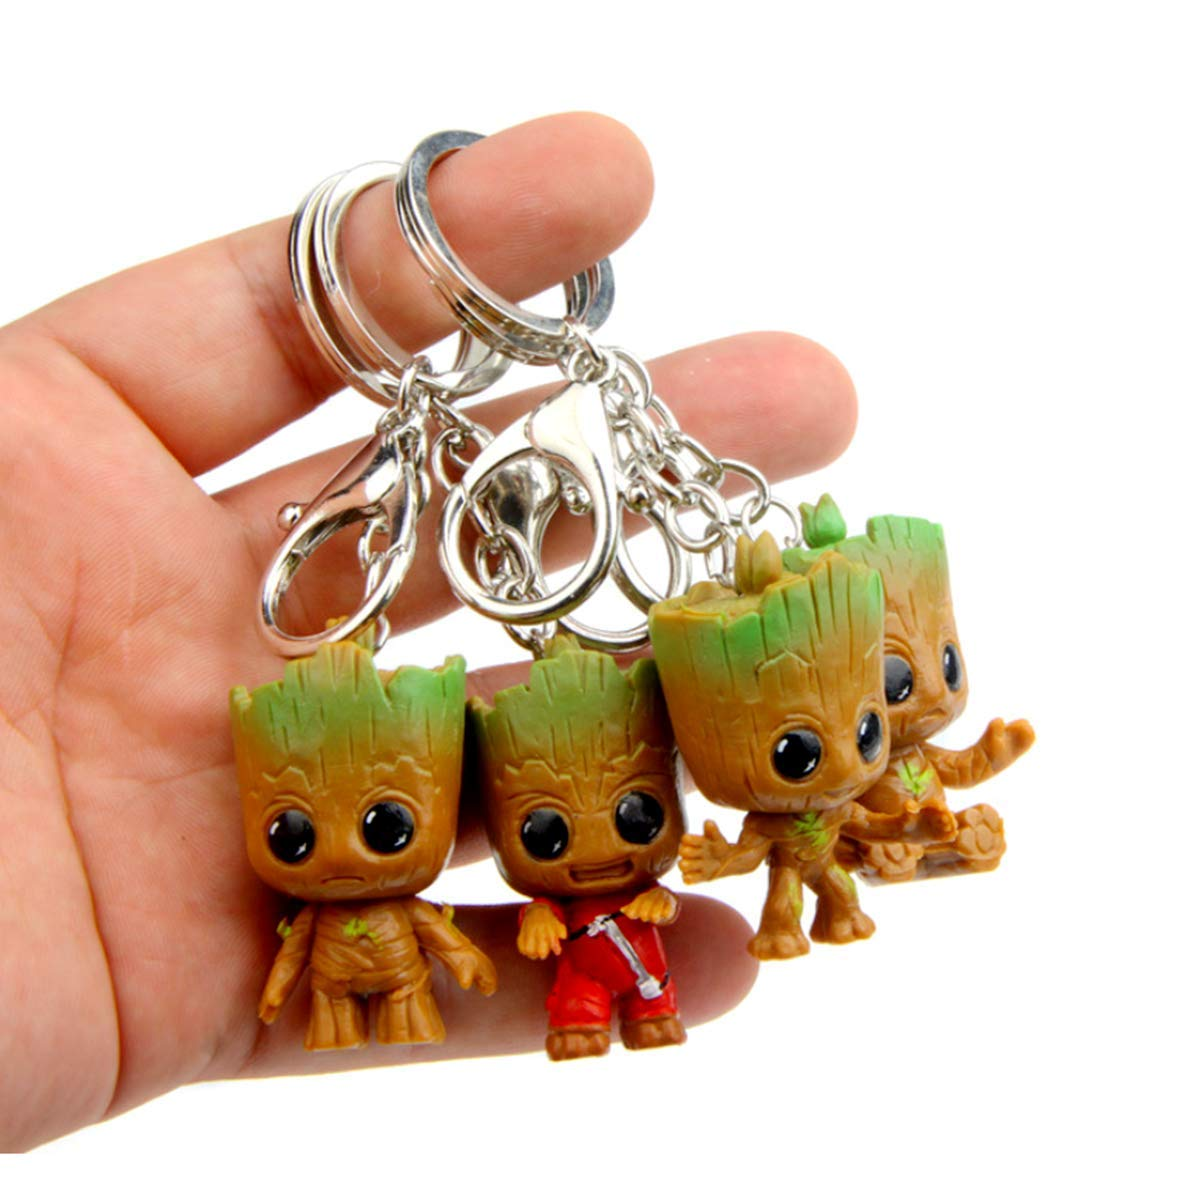 sunliveus Cute Baby Groot Keychain 4 Pack Anime Guardians of The Galaxy Q Version Treant Grote Miniature Key Chain Groot Pendant Key Ring Holder Best ...